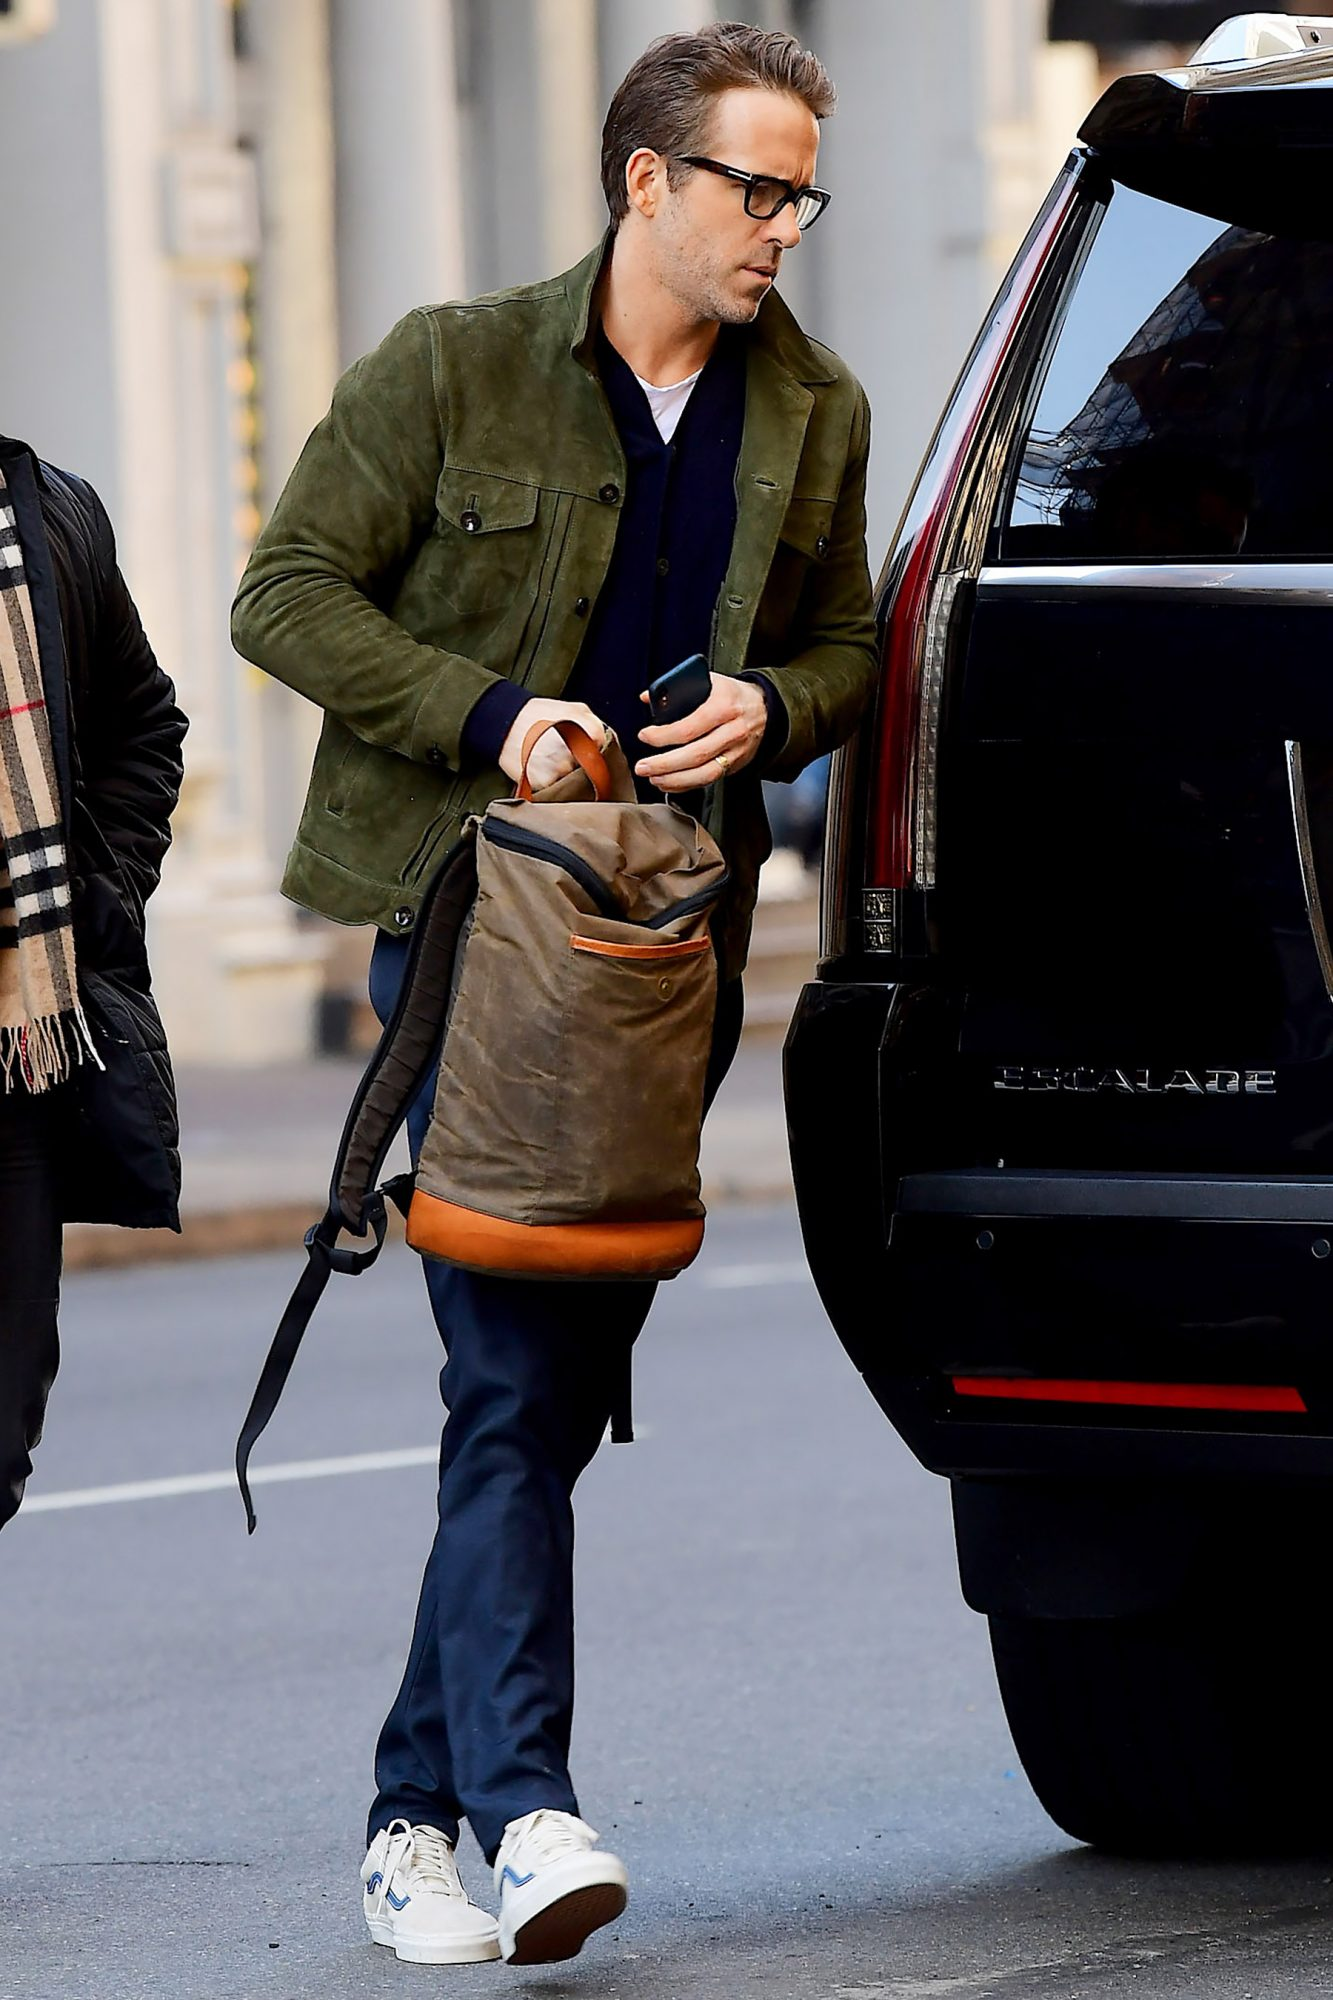 EXCLUSIVE: Ryan Reynolds Spotted looking Cool and Casual Arriving to Photoshoot in NYC